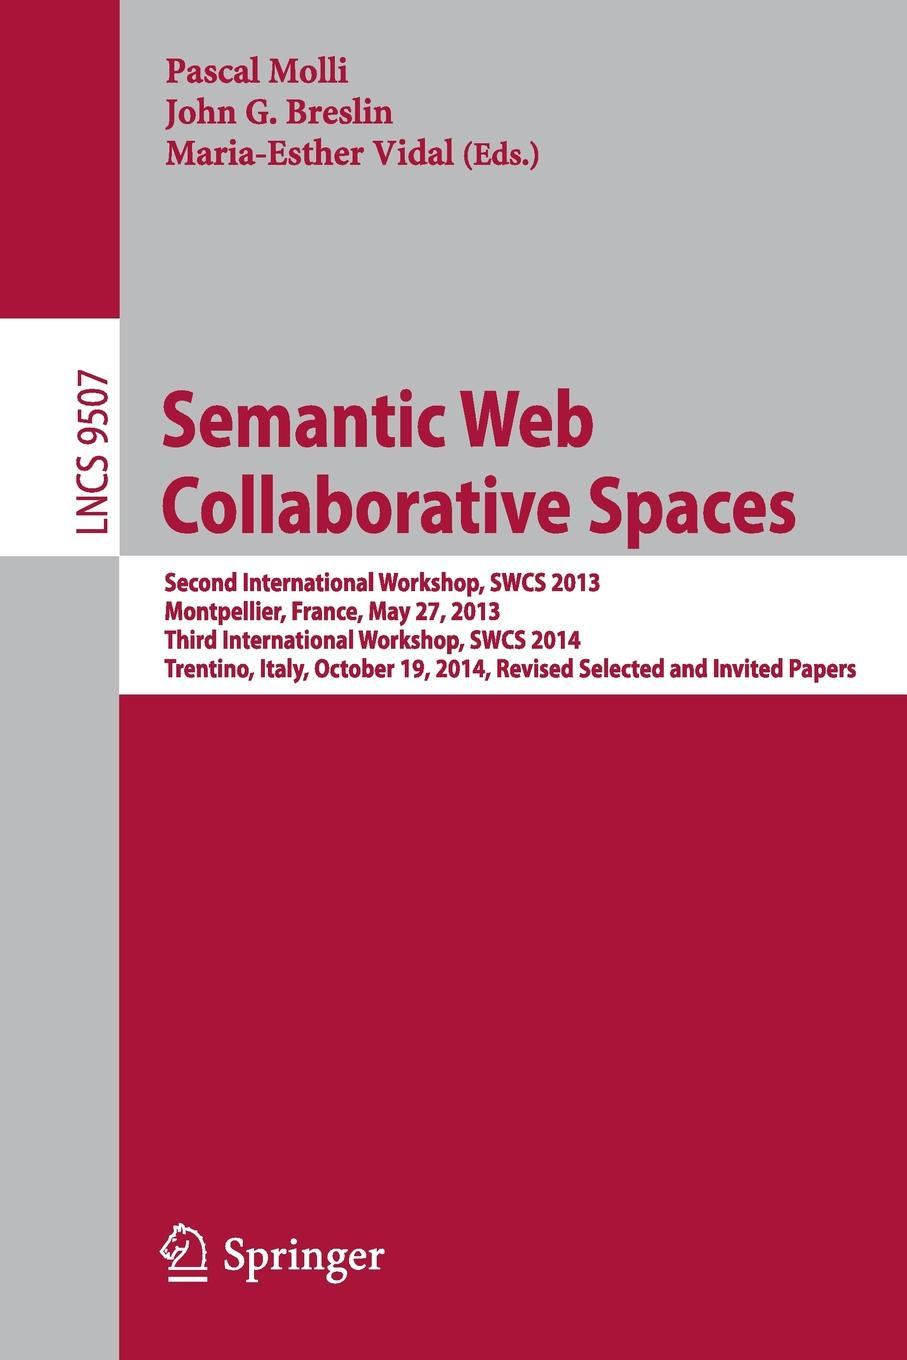 Semantic Web Collaborative Spaces Second International Workshop SWCS 2013 Montepellier France May 27 2013 Third International Workshop SWCS 2014 Trentino Italy October 19 2014 Revised Selected and Invited Papers